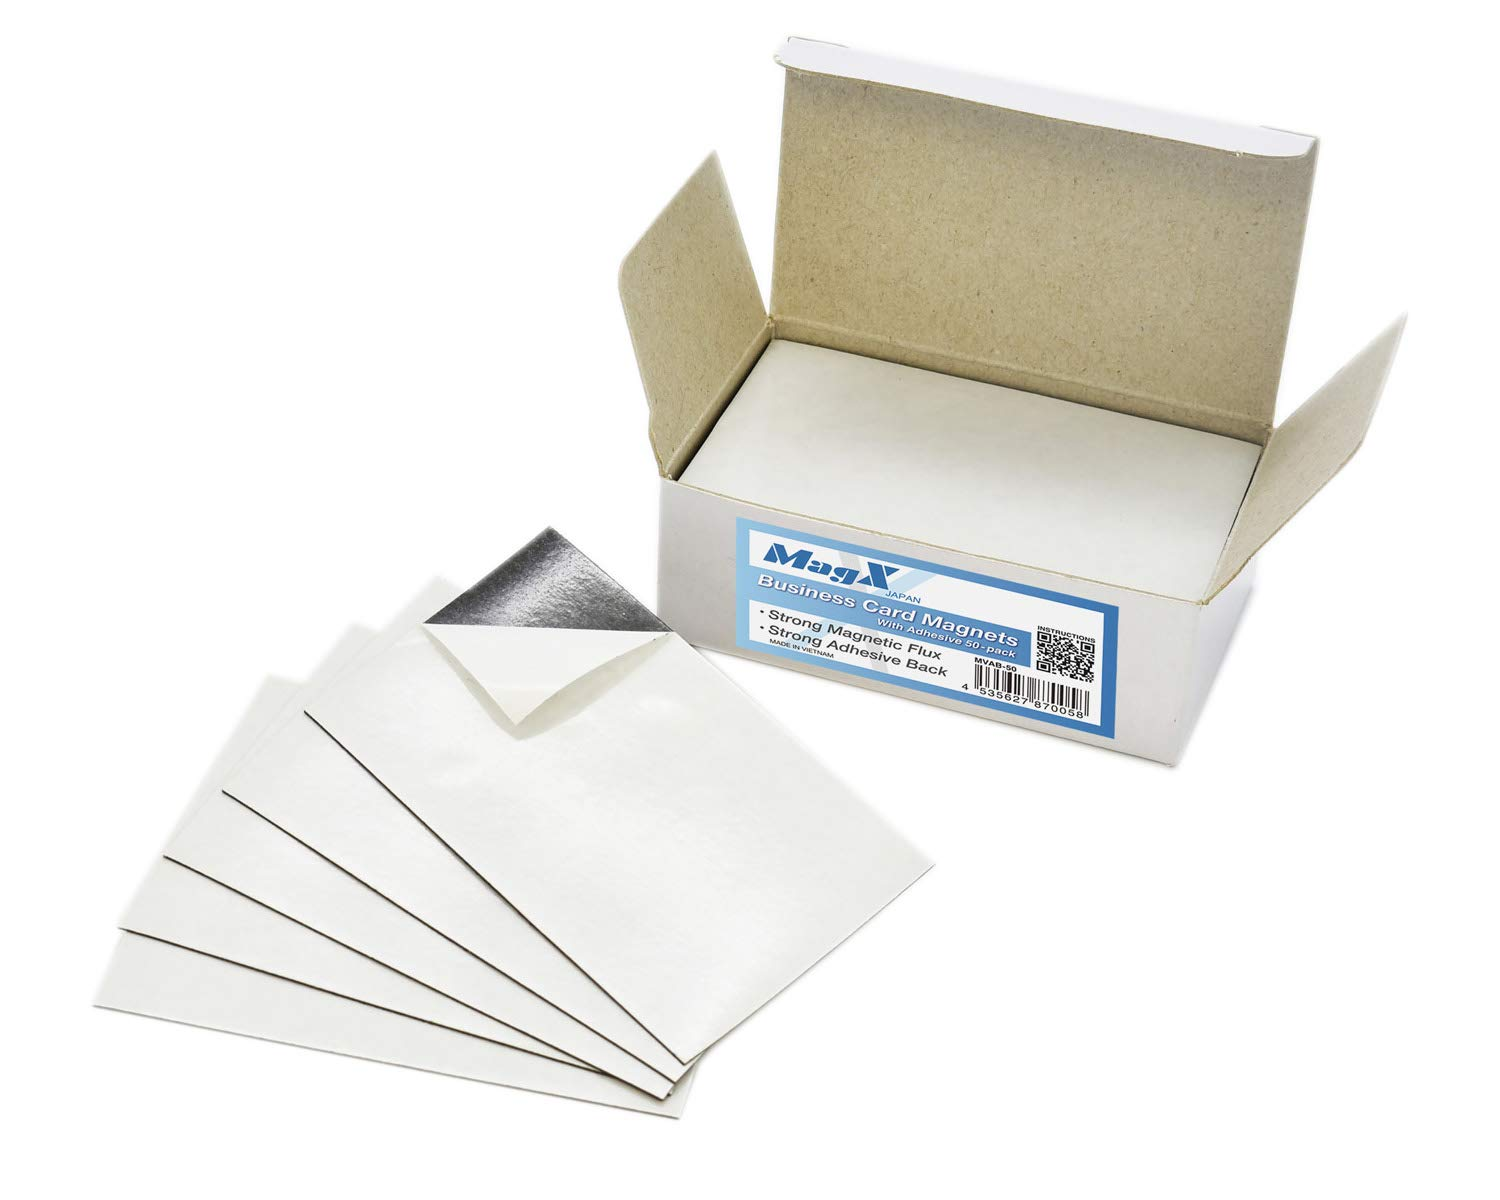 MagX Magnetic Business Card with Adhesive 2x3.5 inch(50-pack), Magnets with Self Adhesive, Peel and Stick, Stationery, Office supply